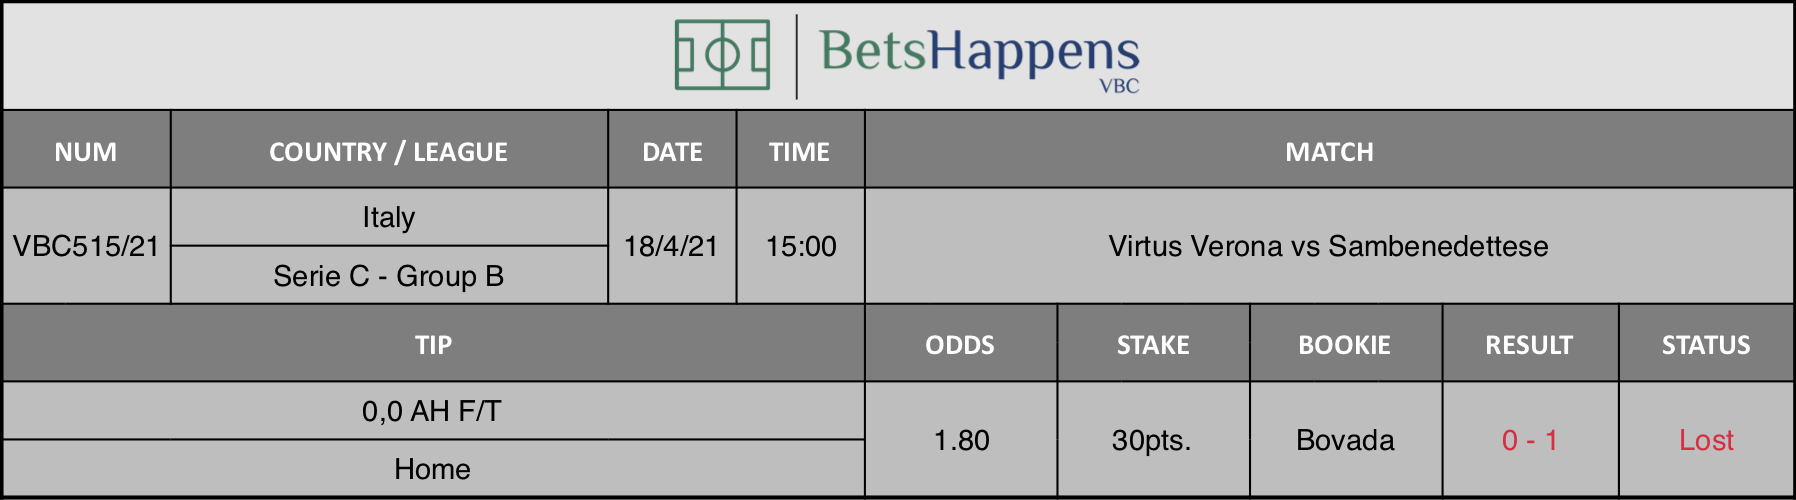 Results of our tip for the Virtus Verona vs Sambenedettese match where 0,0 AH F/T  Home is recommended.